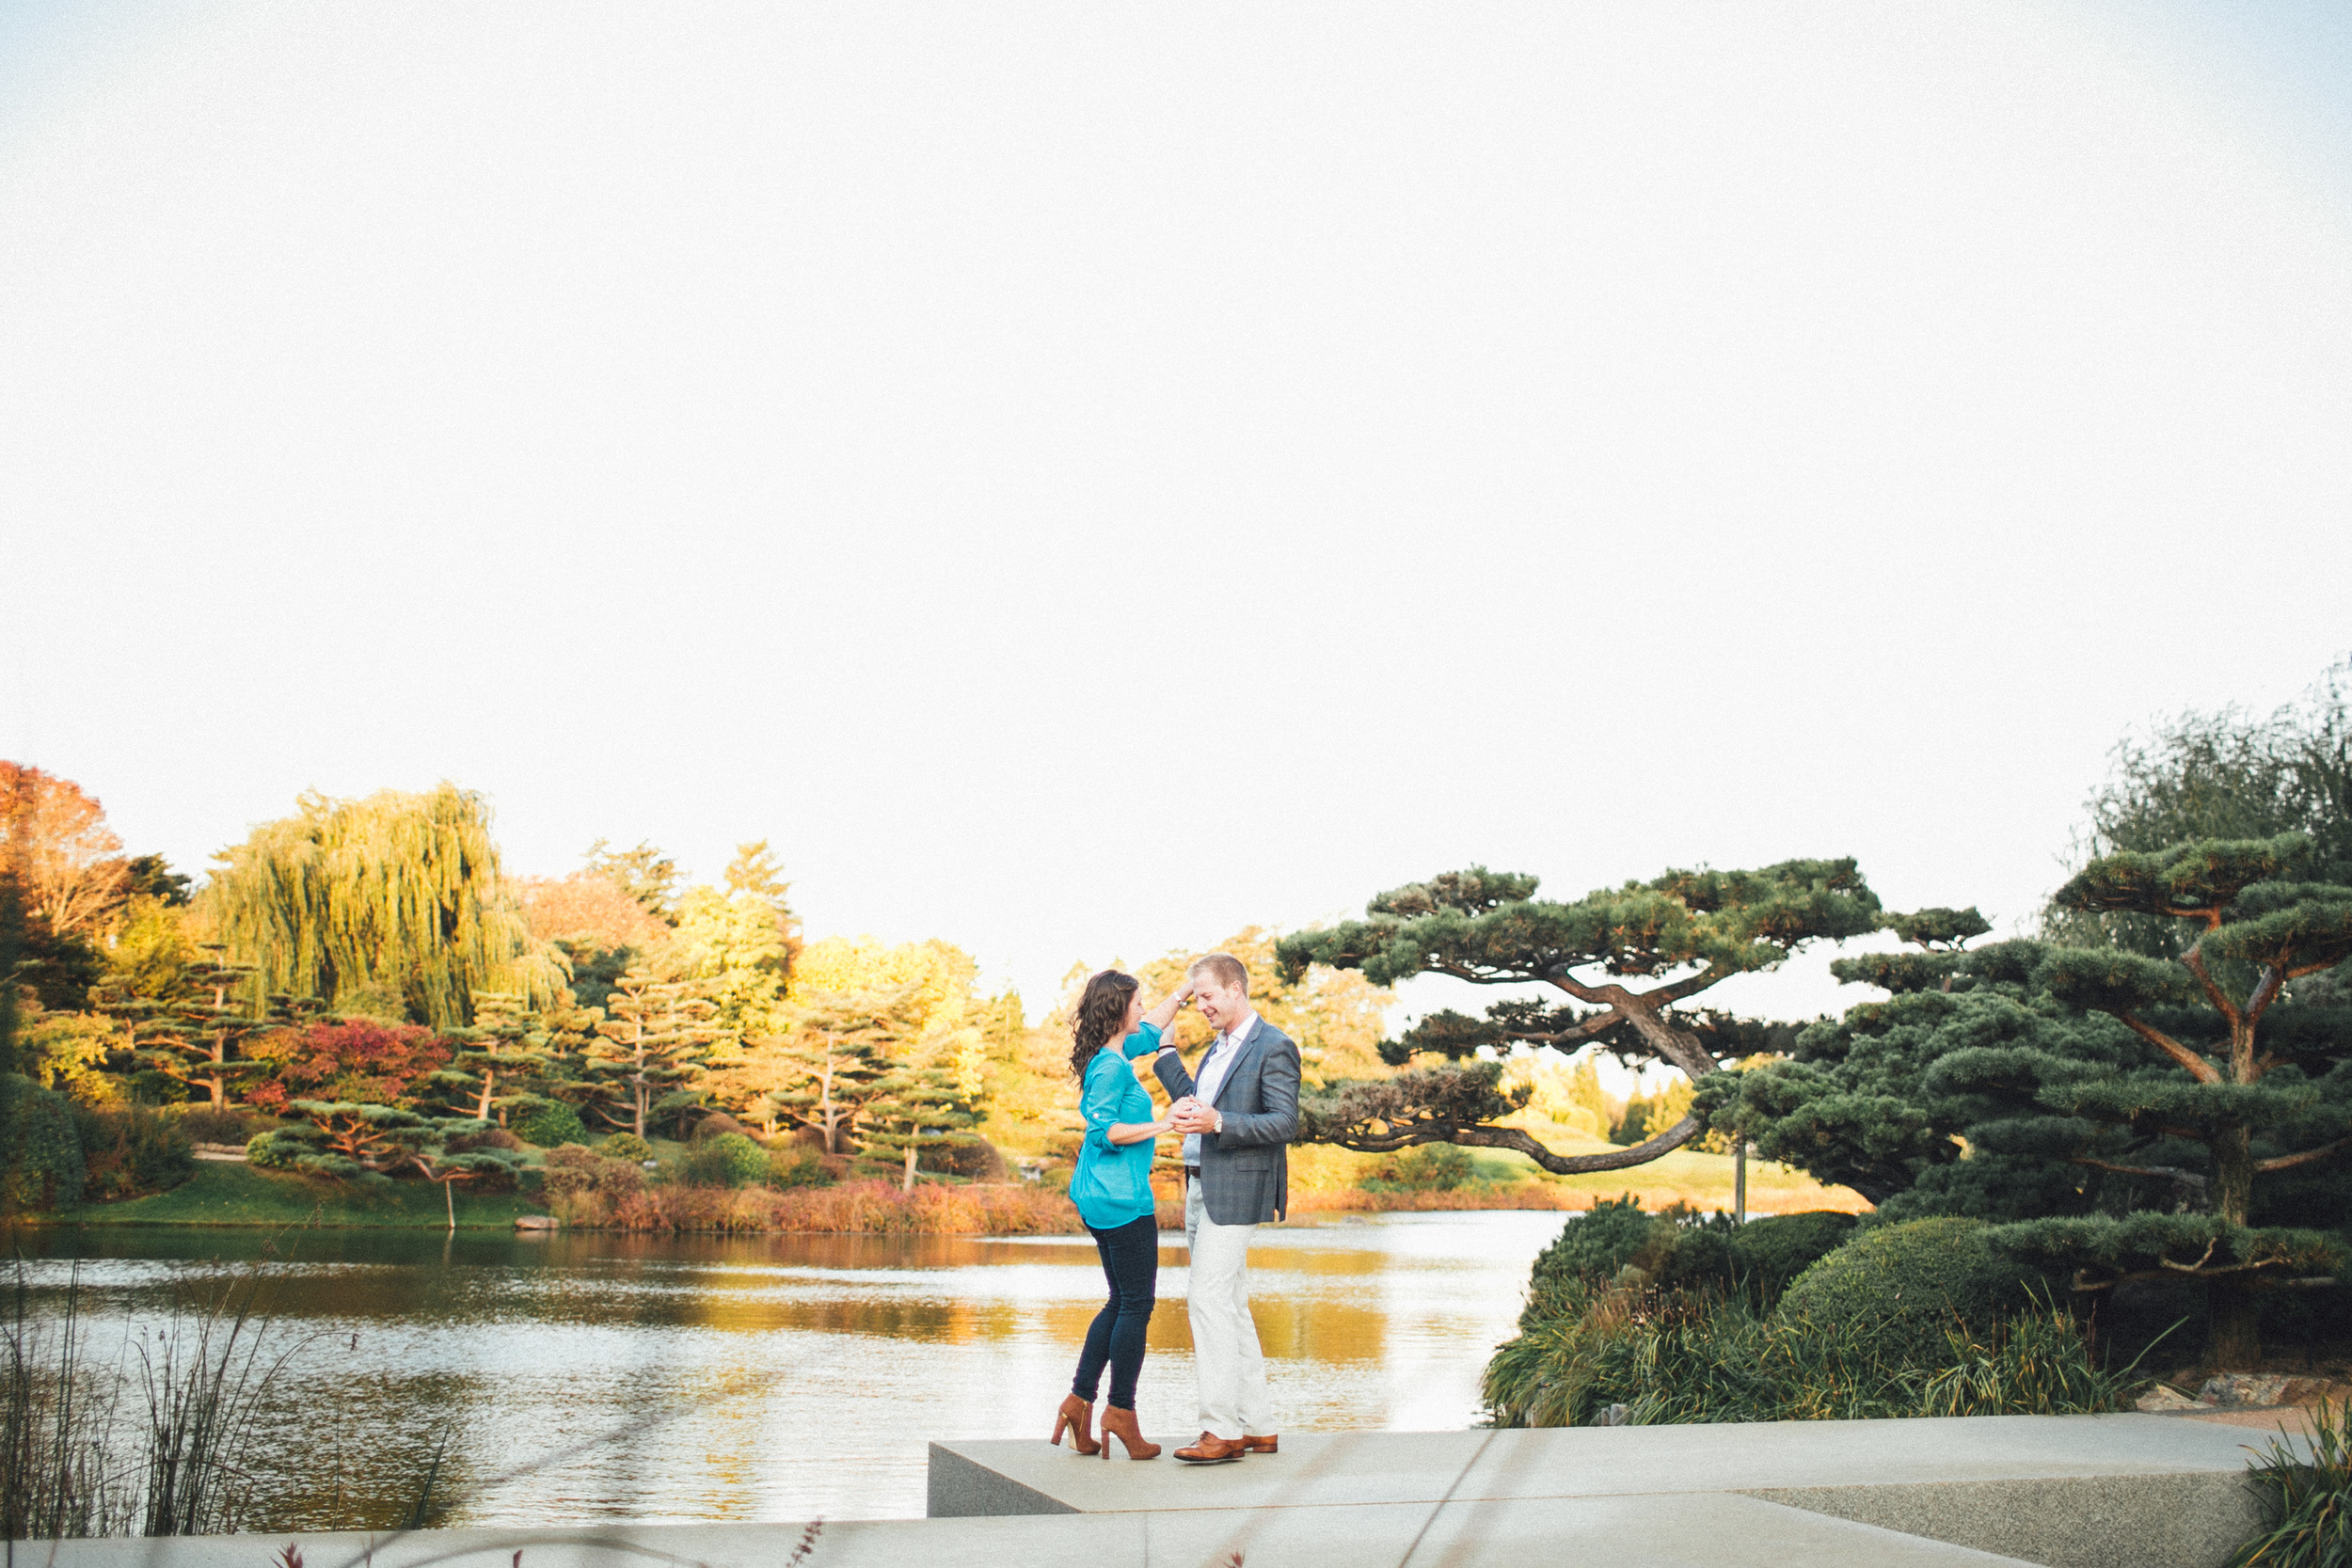 mayden photography_chicago botanical gardens engagement photo-10.jpg